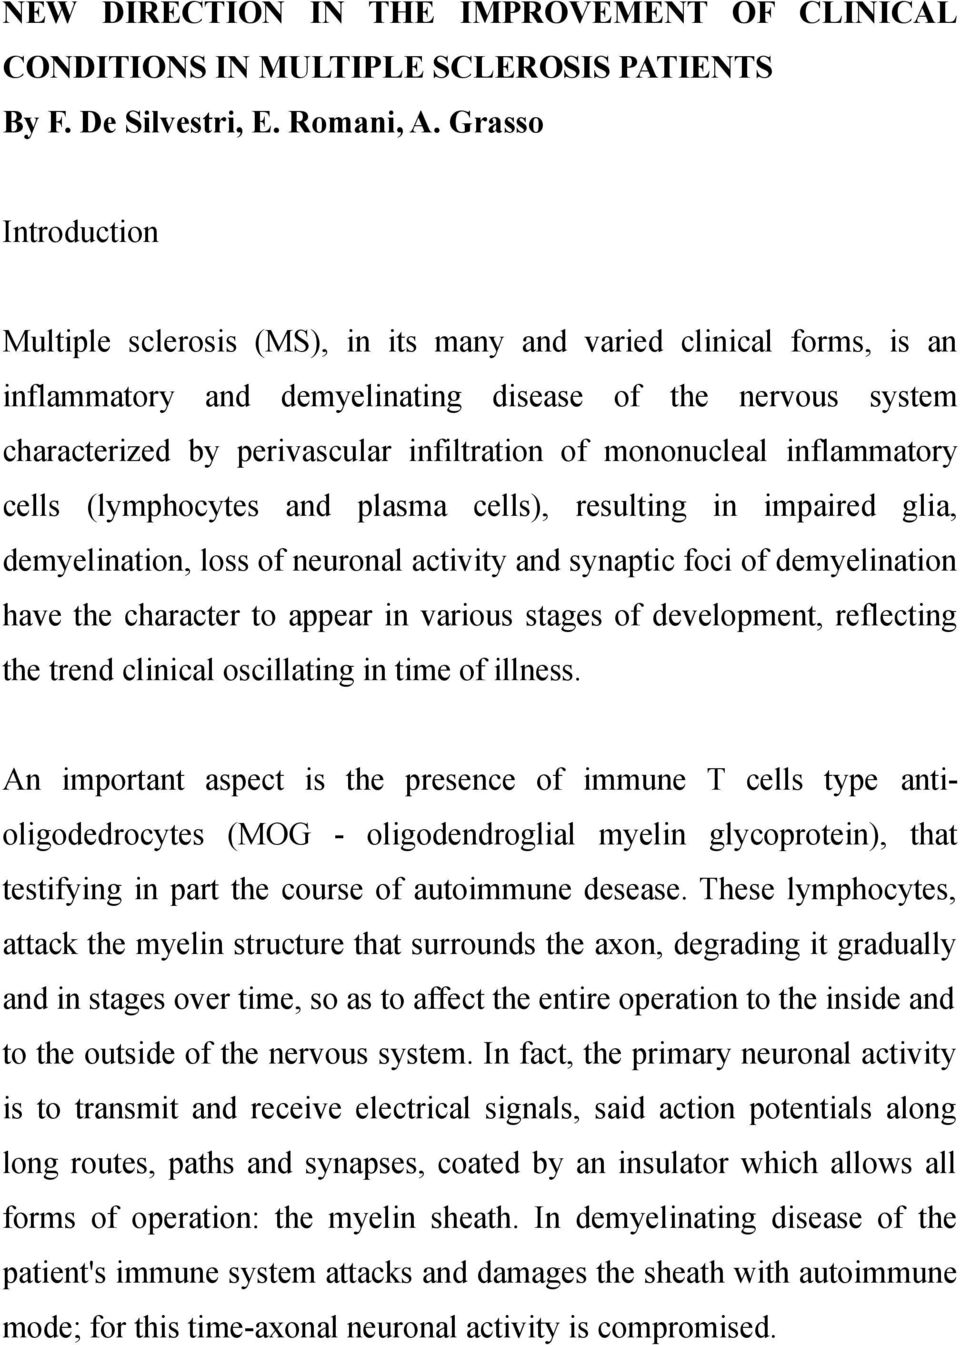 mononucleal inflammatory cells (lymphocytes and plasma cells), resulting in impaired glia, demyelination, loss of neuronal activity and synaptic foci of demyelination have the character to appear in